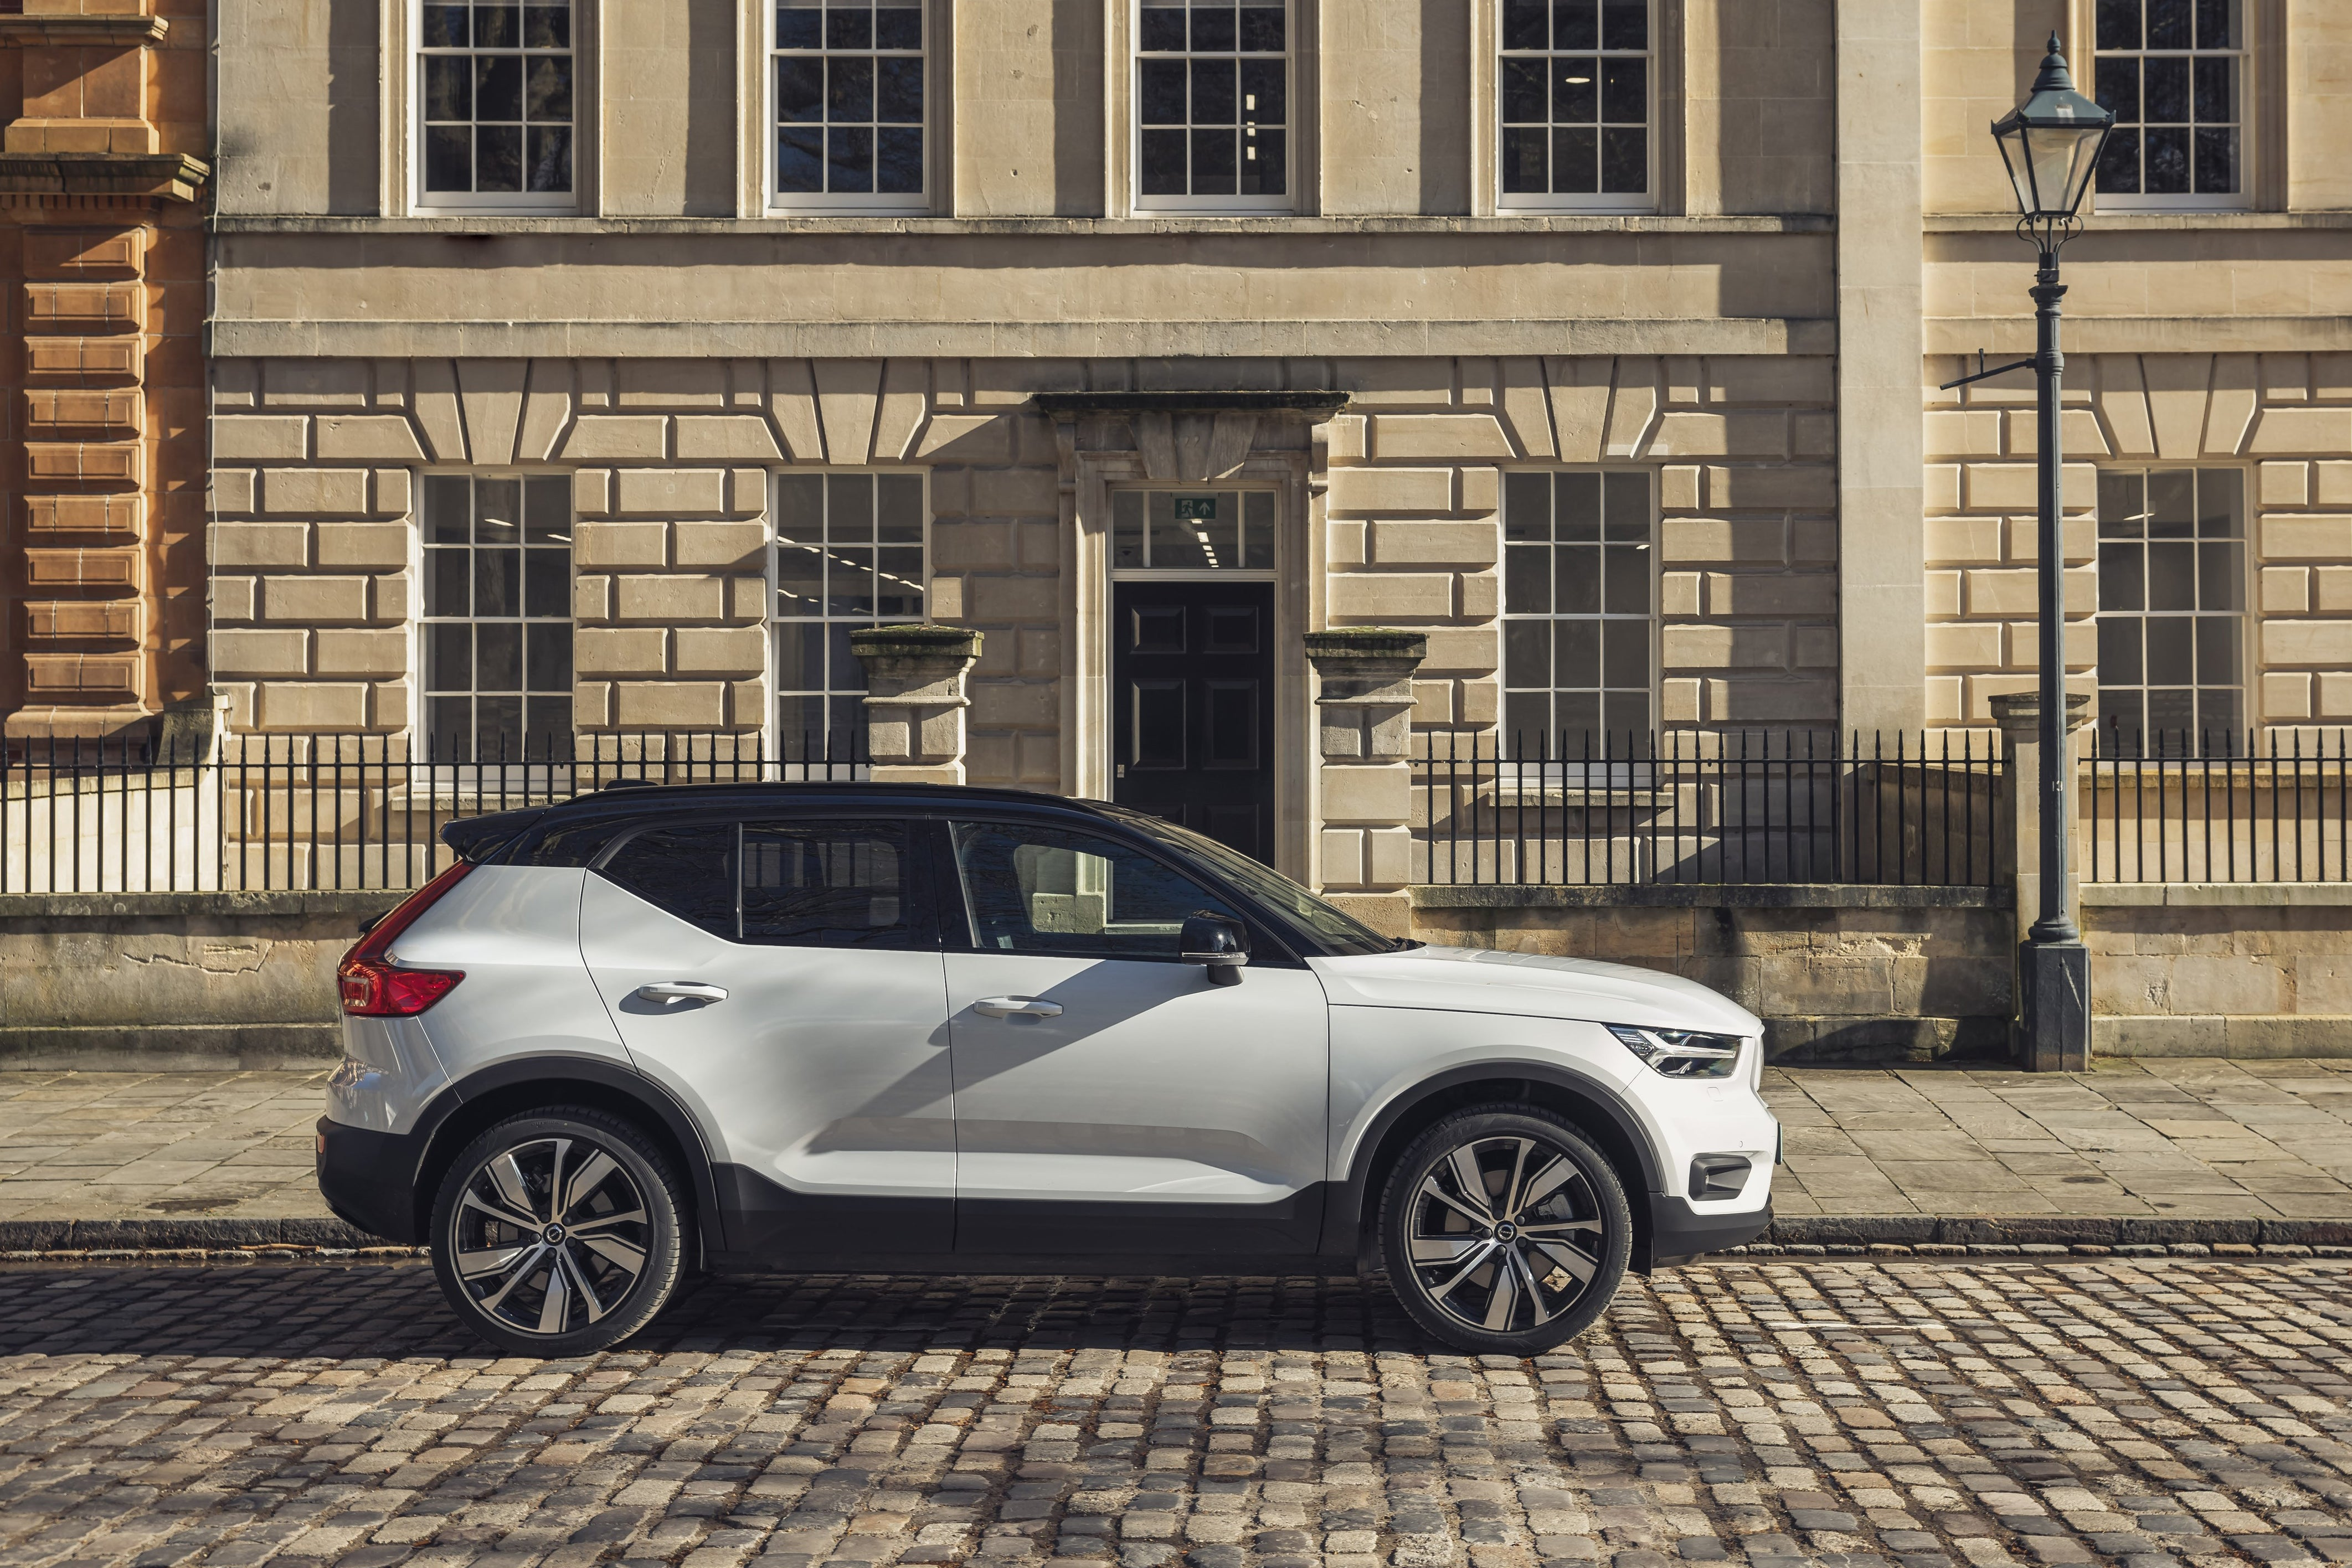 Best small SUVs and crossovers